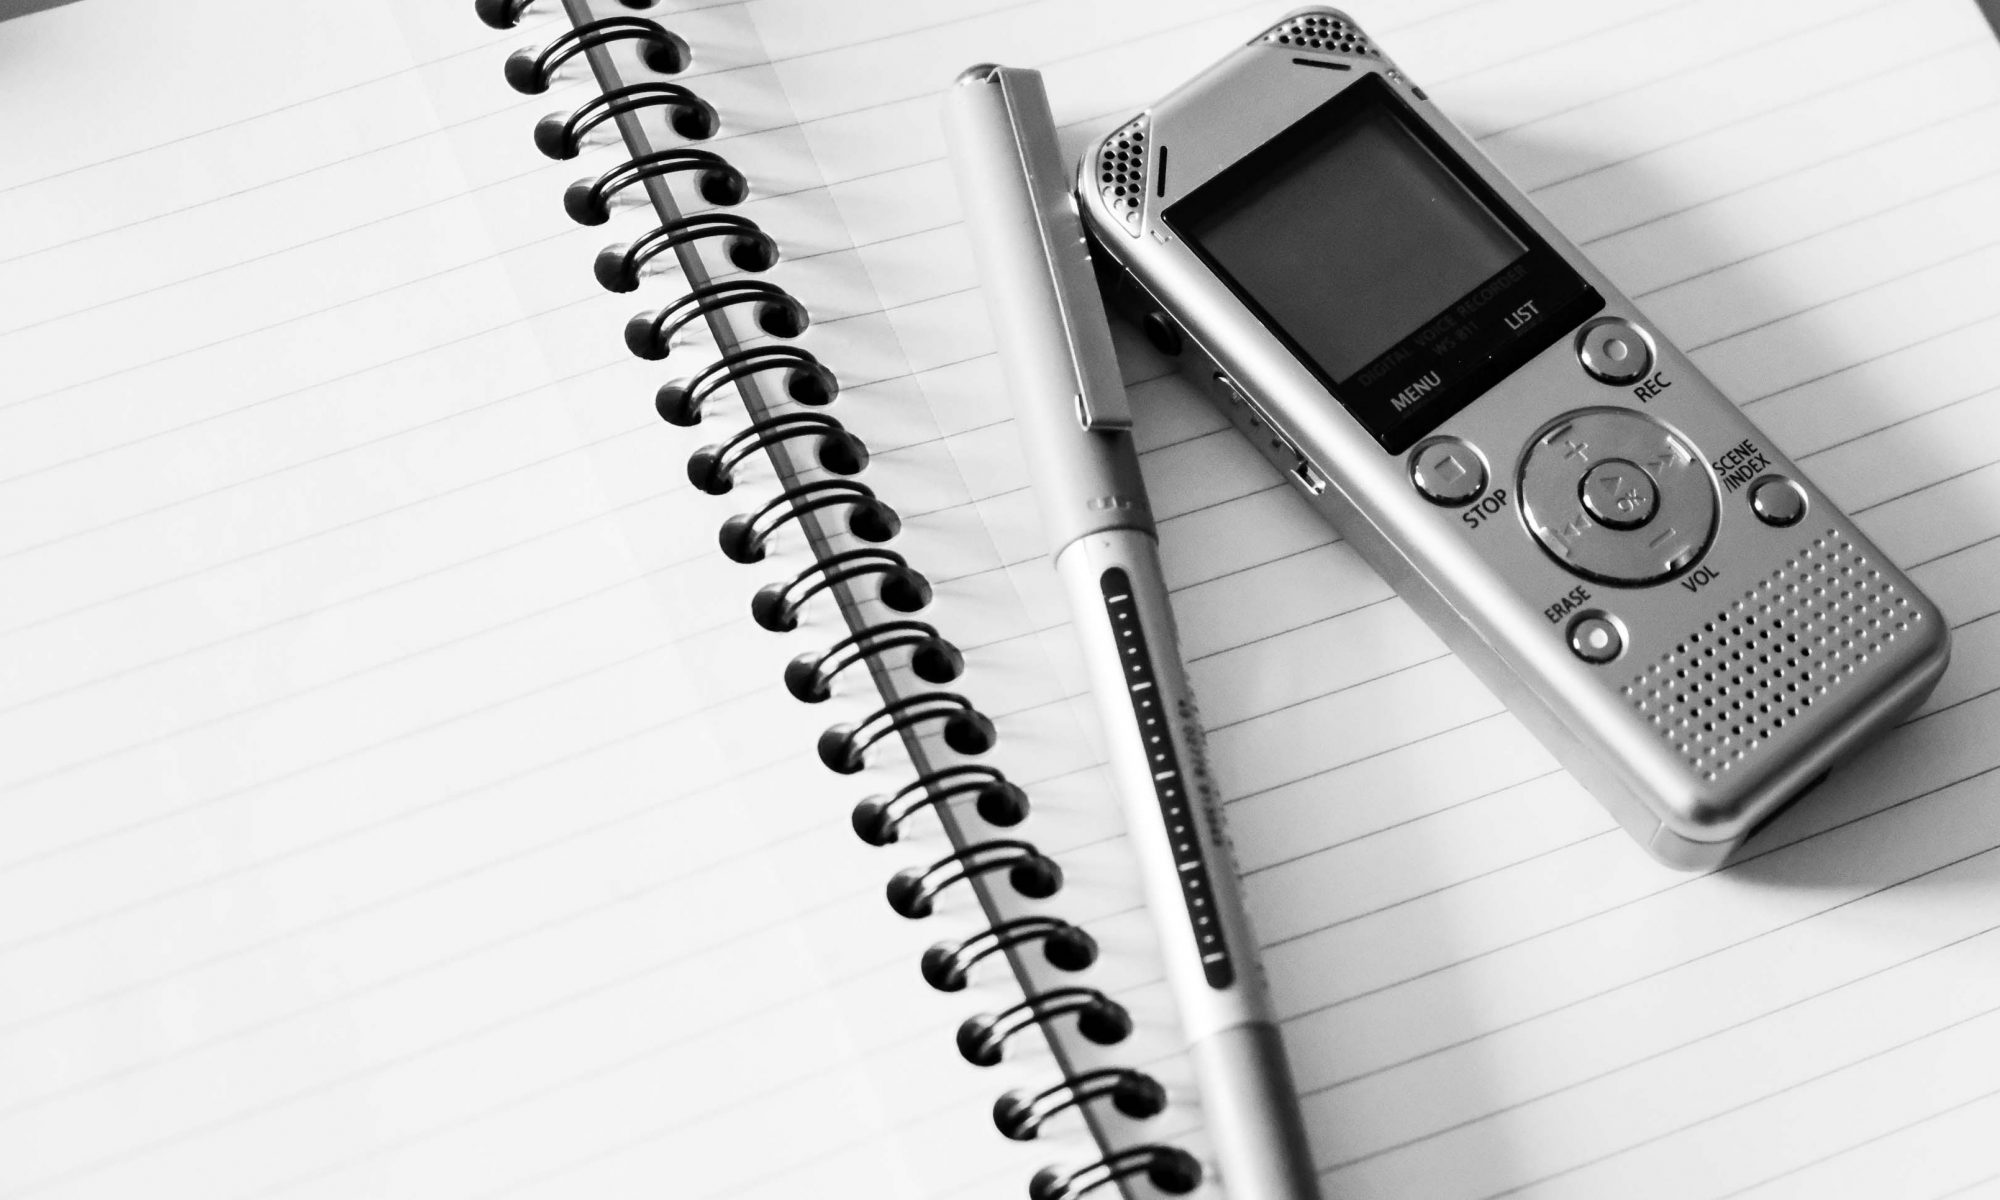 a dictaphone and pen sits on a spiral bound notepad